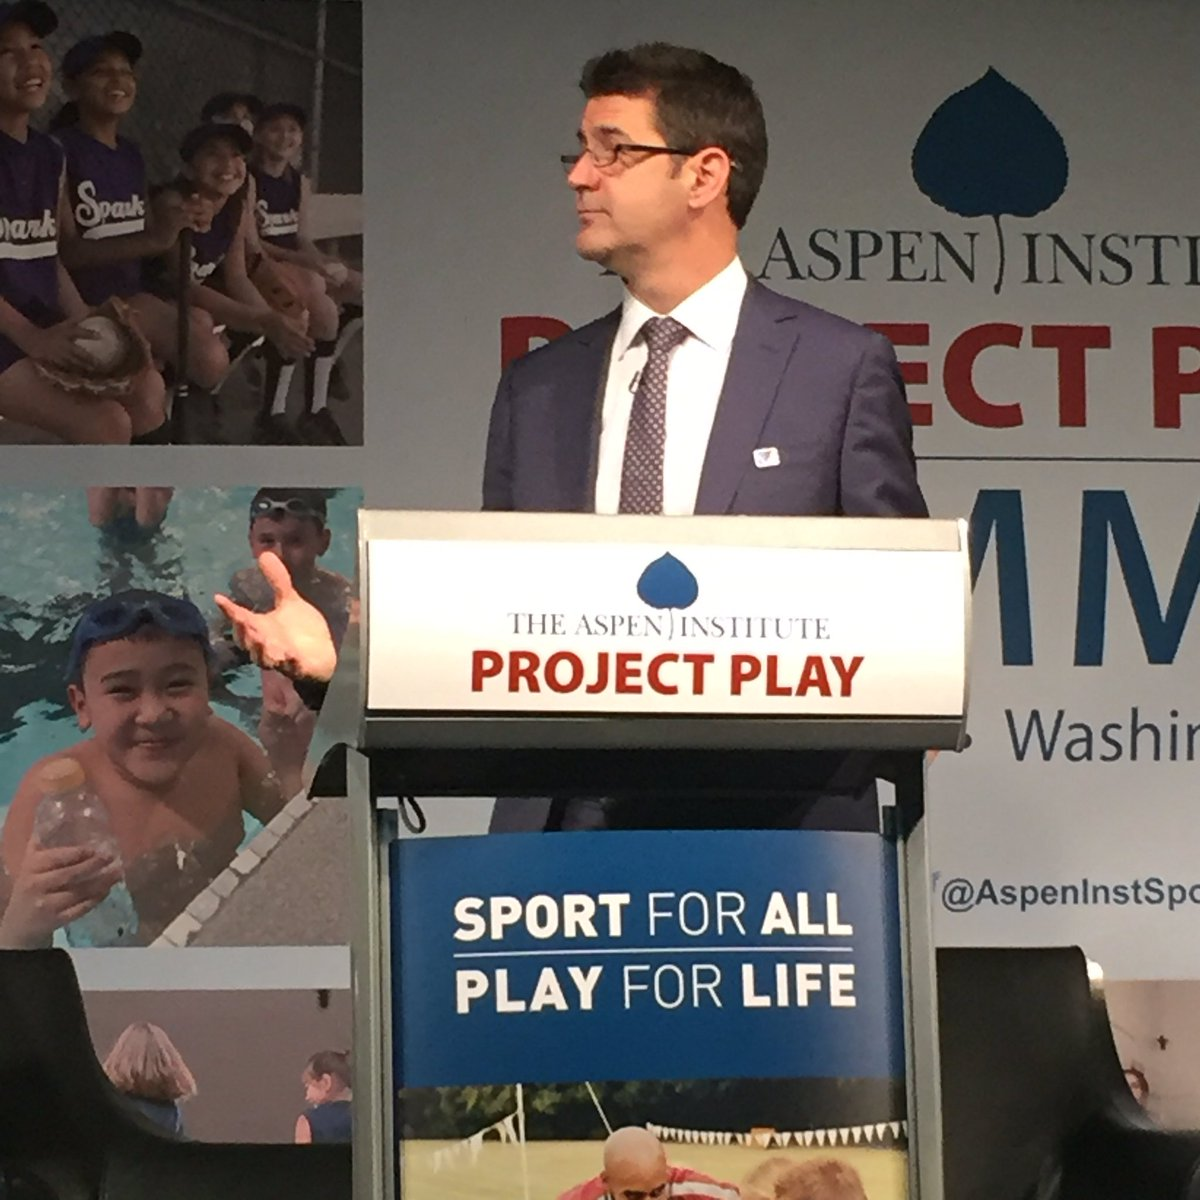 """How well are we doing at getting kids active though sport"" - @TomFarrey #ProjectPlay https://t.co/nLmr3VLwZX"